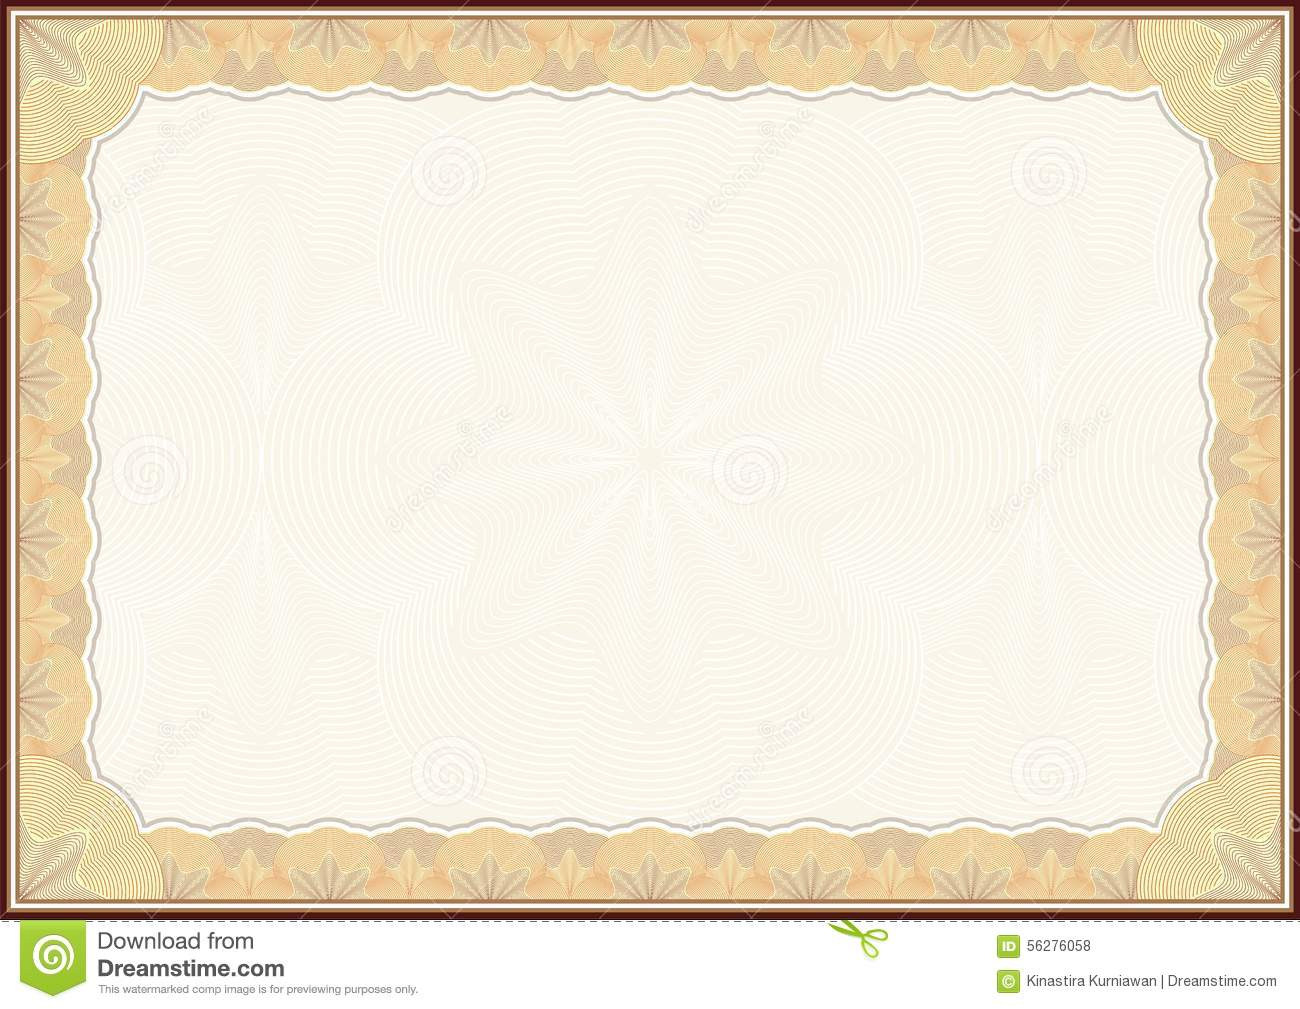 new certificate template design stock illustration